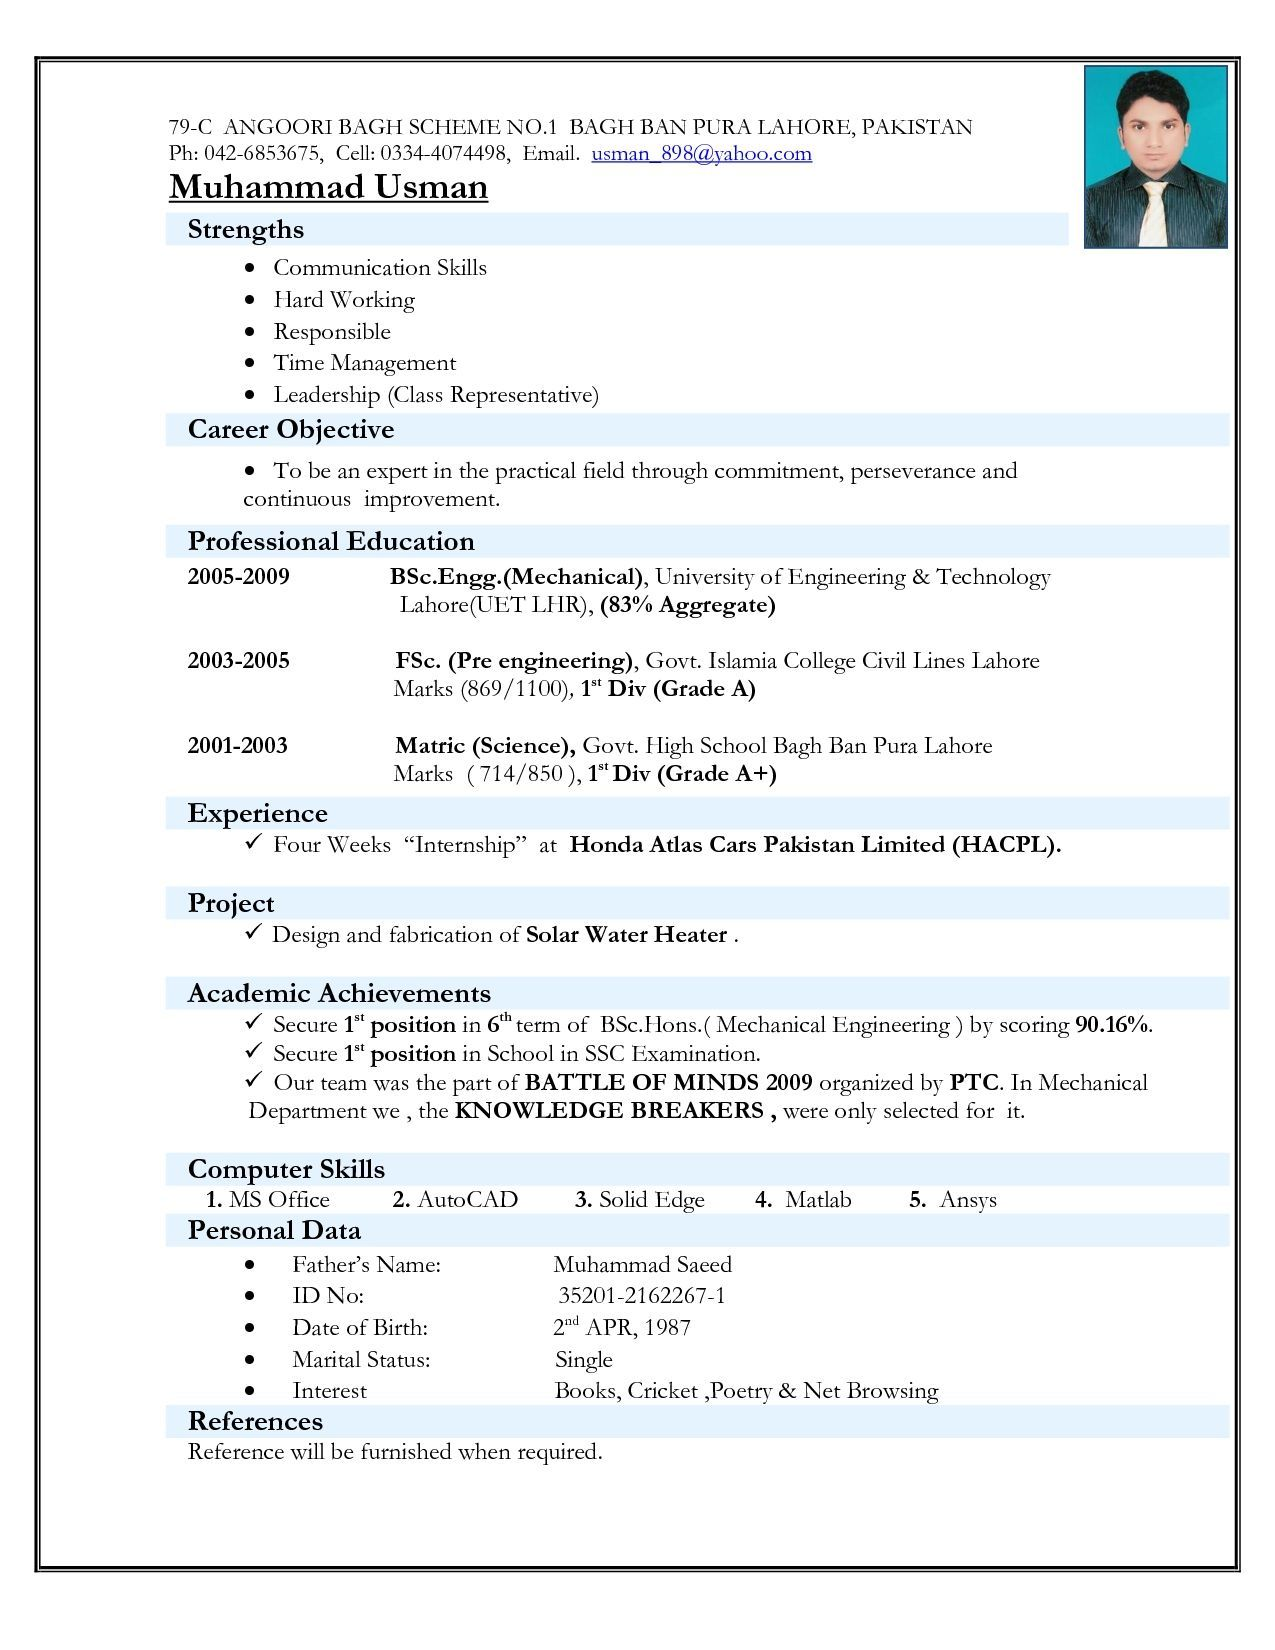 Top 5 Resume Formats For Freshers Resume Format Resume Format Download Best Resume Format Resume Format For Freshers